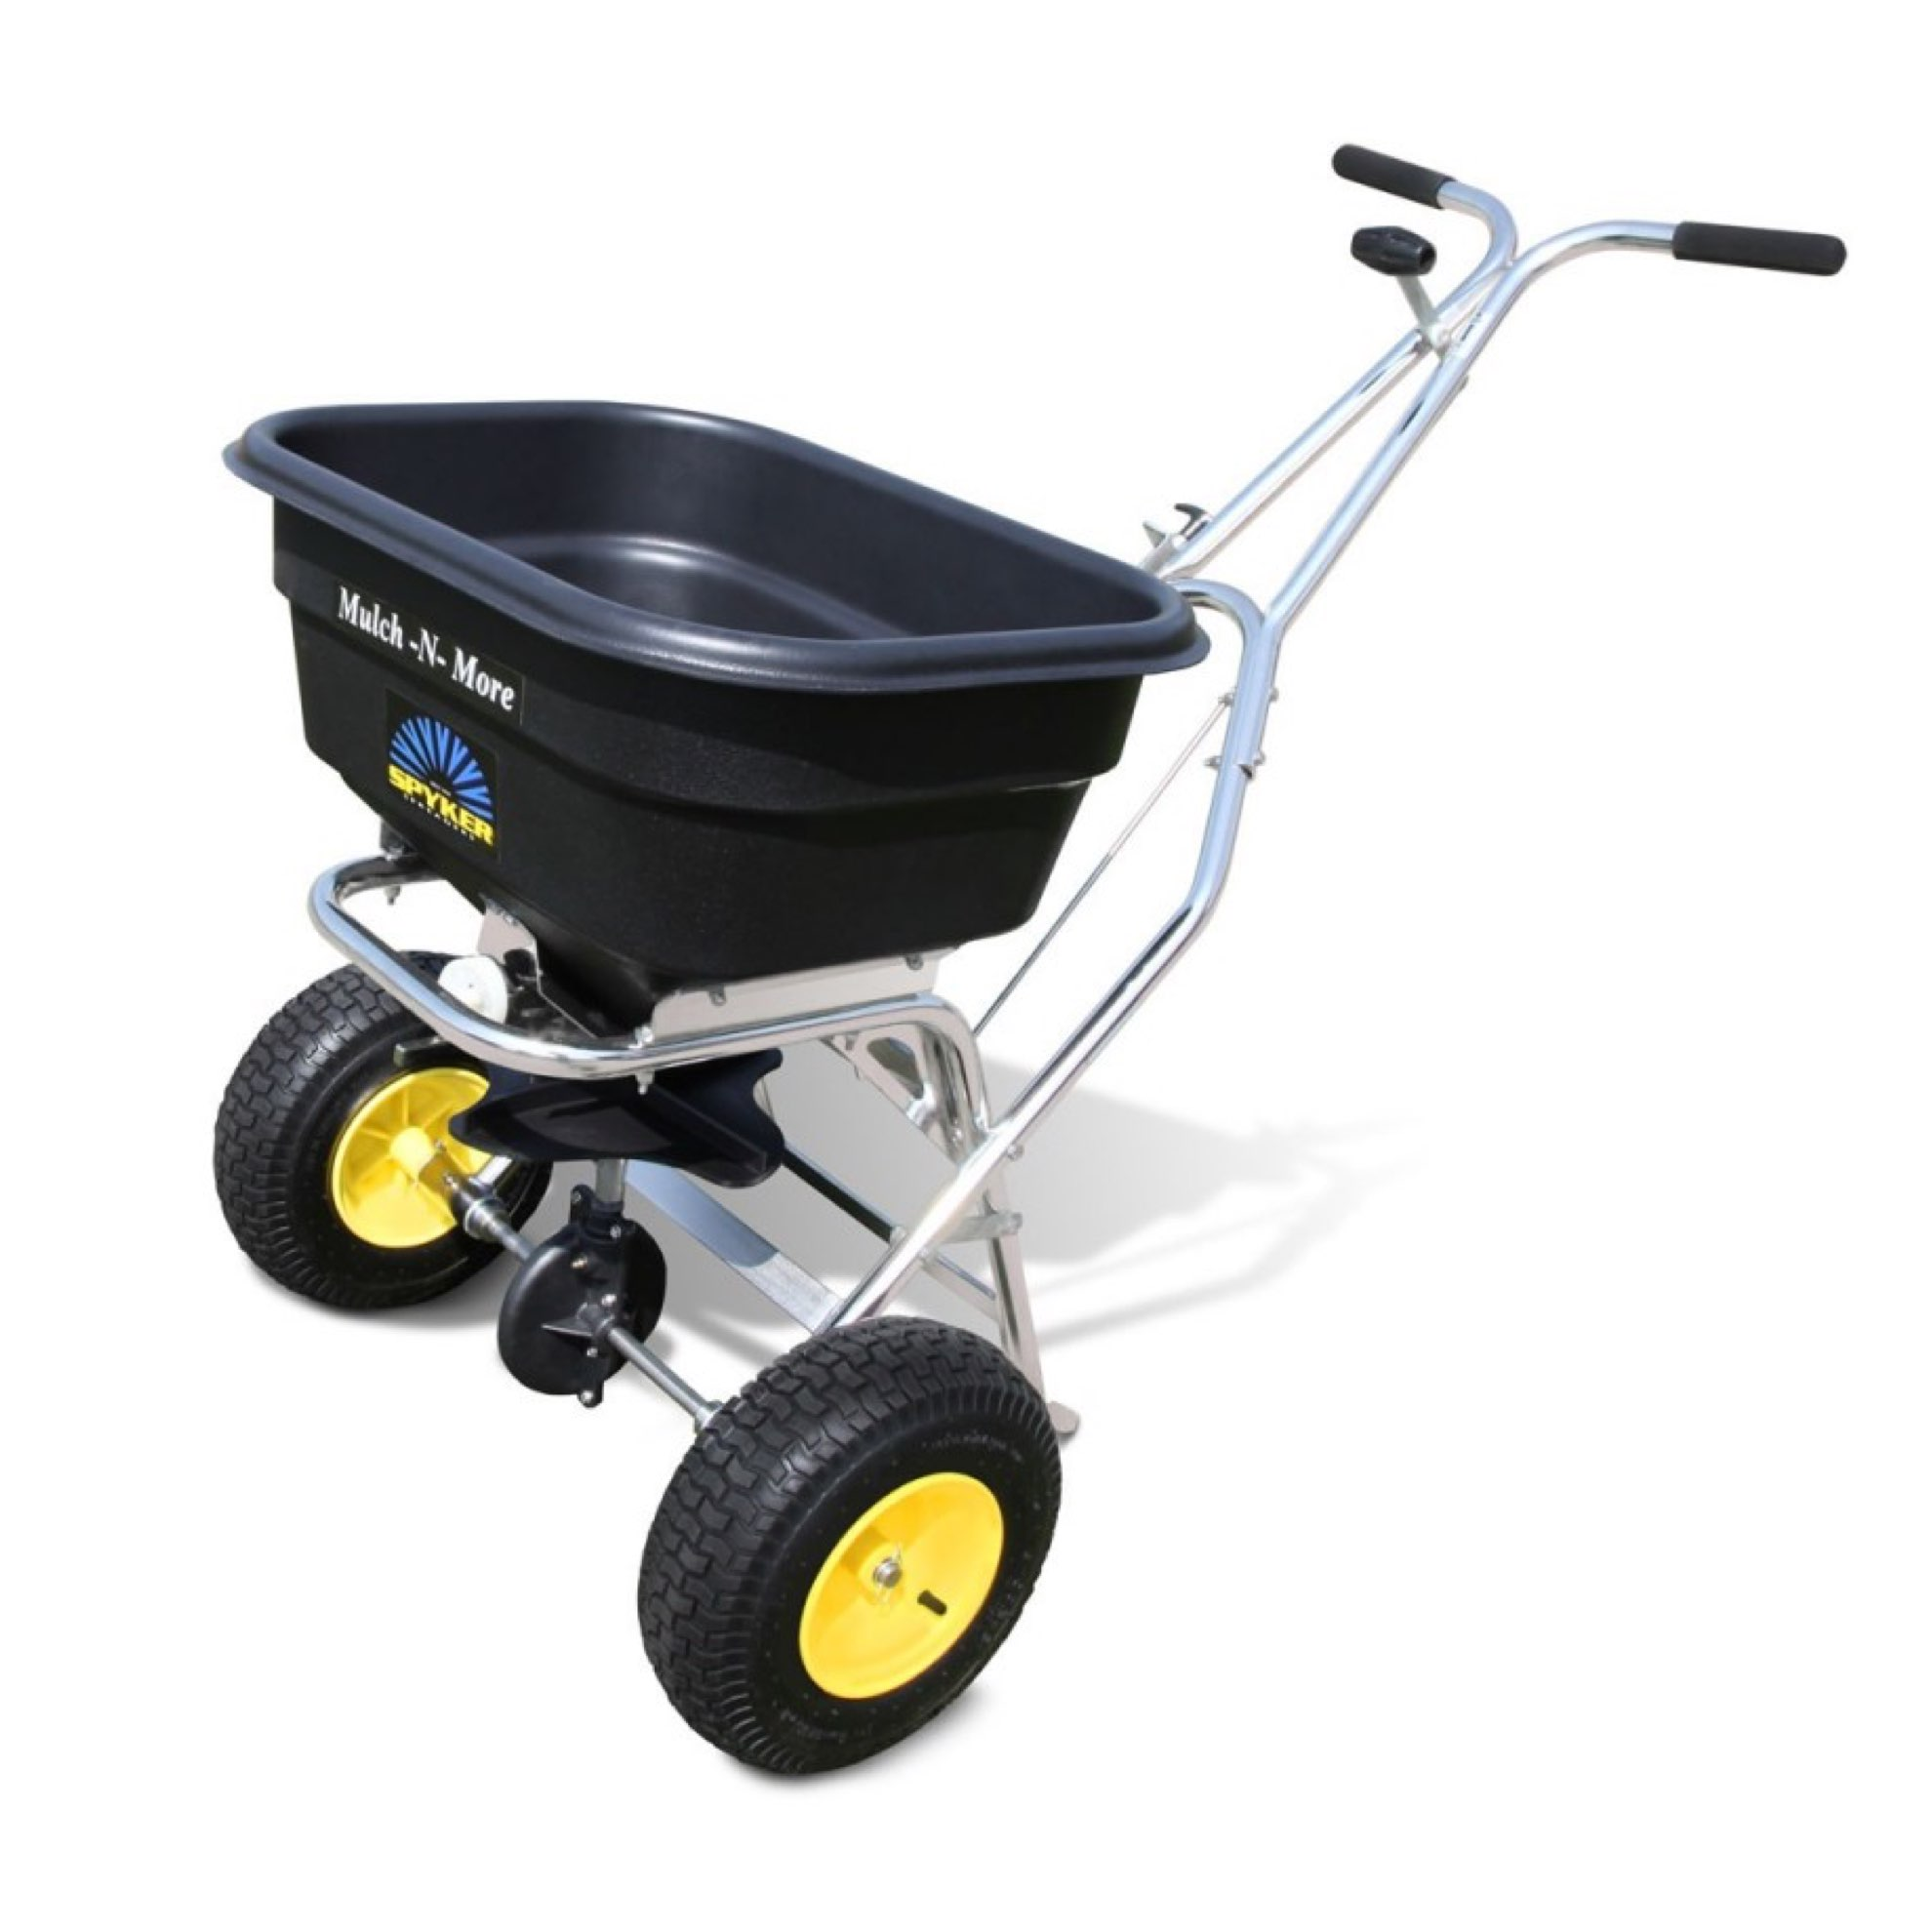 Spyker S60-12020 120lb Pro Series Mulch-N-More Sport and Lawn Spreader